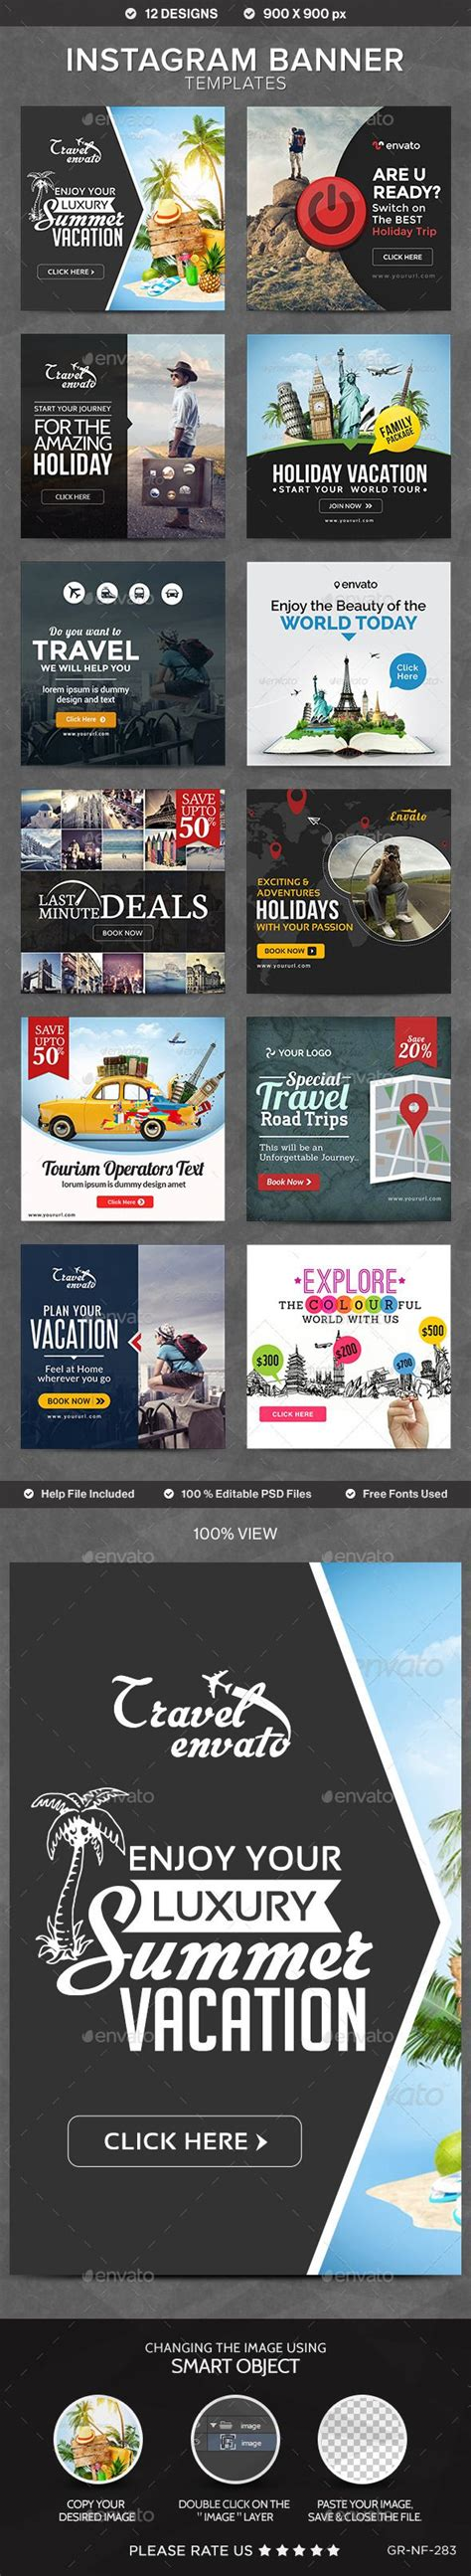 25 Best Ideas About Banner Template On Pinterest Banners Love Cards And Love Letters Instagram Ad Template Psd